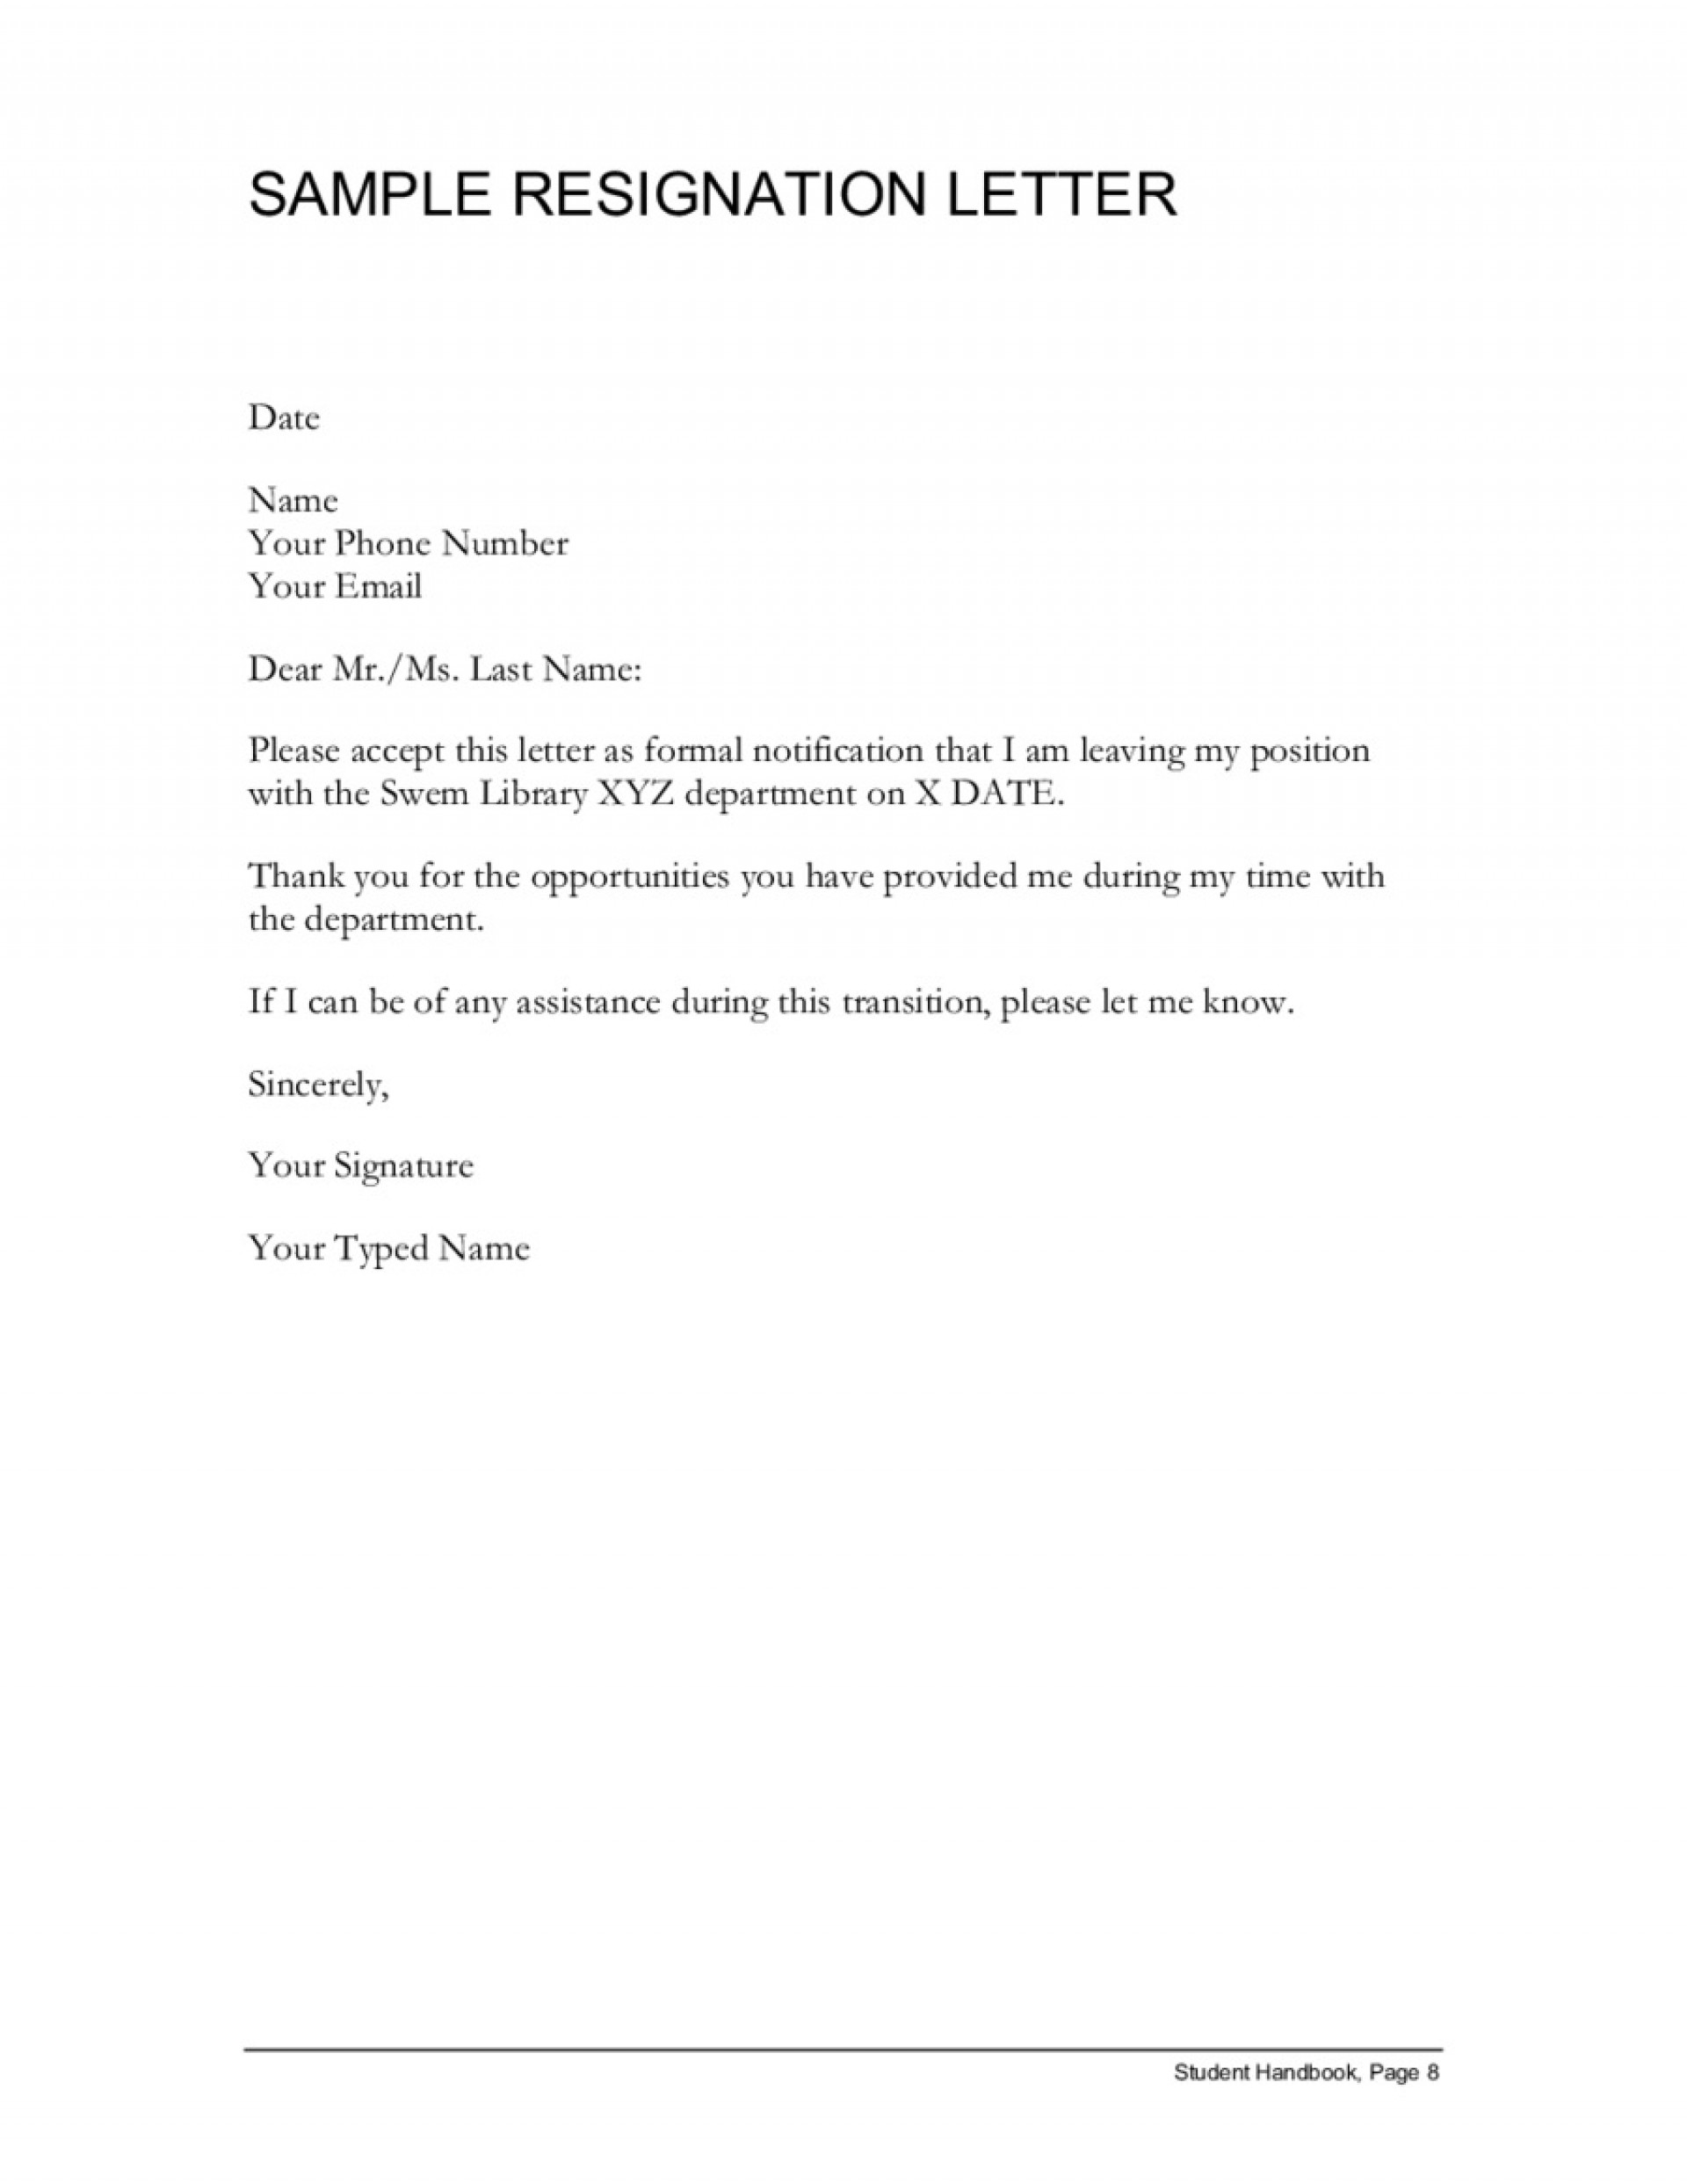 002 Fantastic Professional Resignation Letter Template High Def  Best Format Pdf How To Write A1920